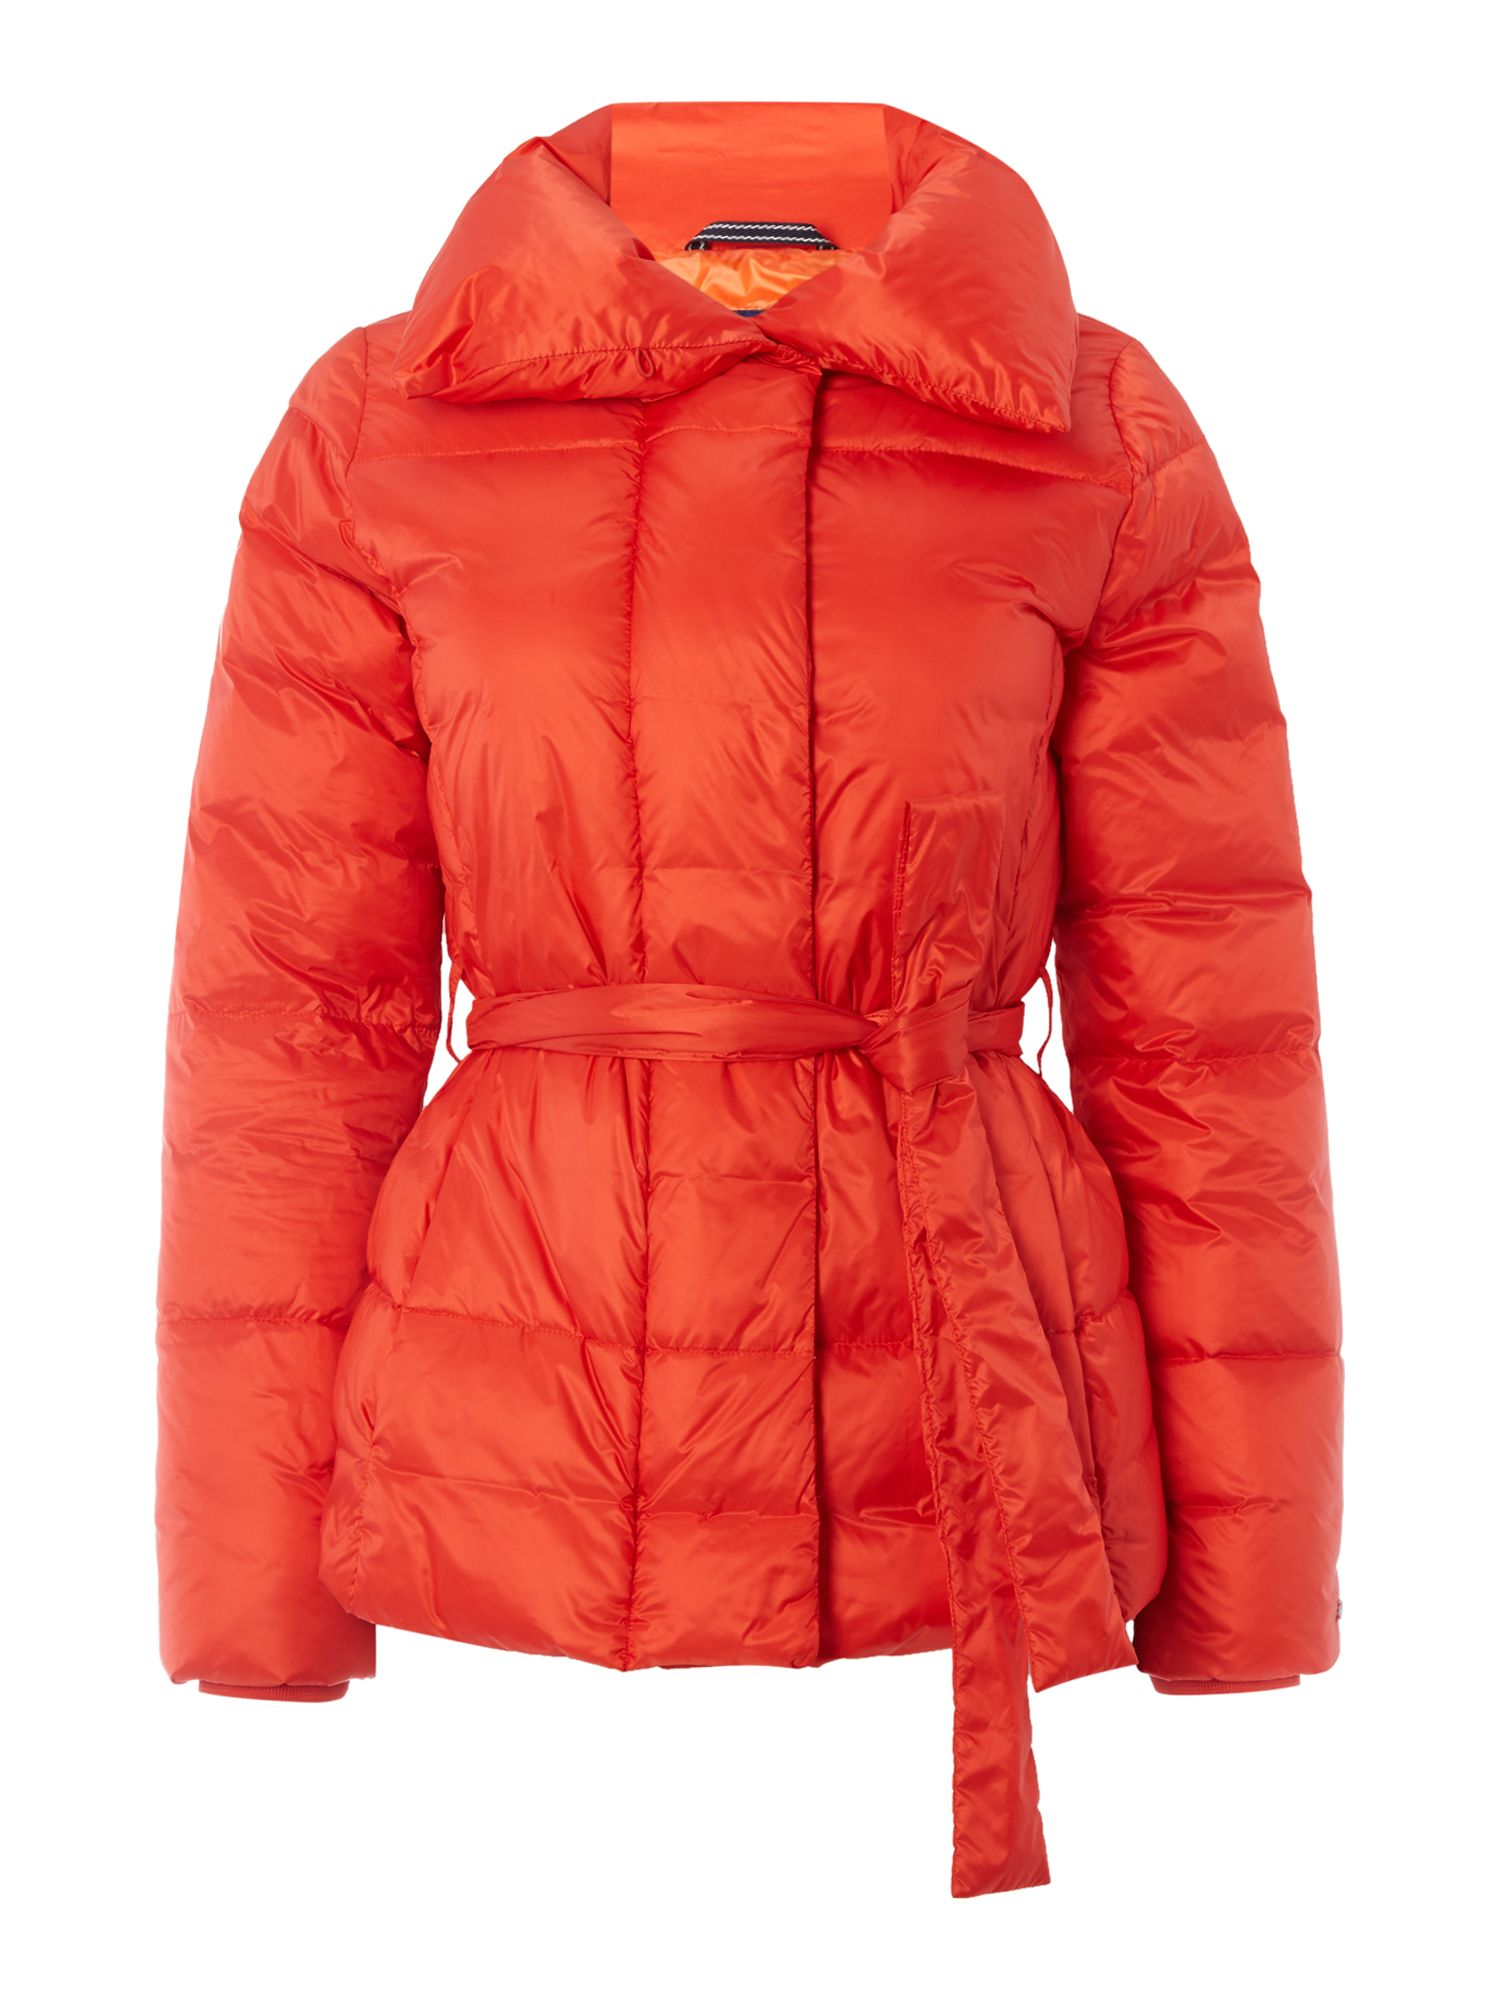 Gant Belted Down Jacket, Orange